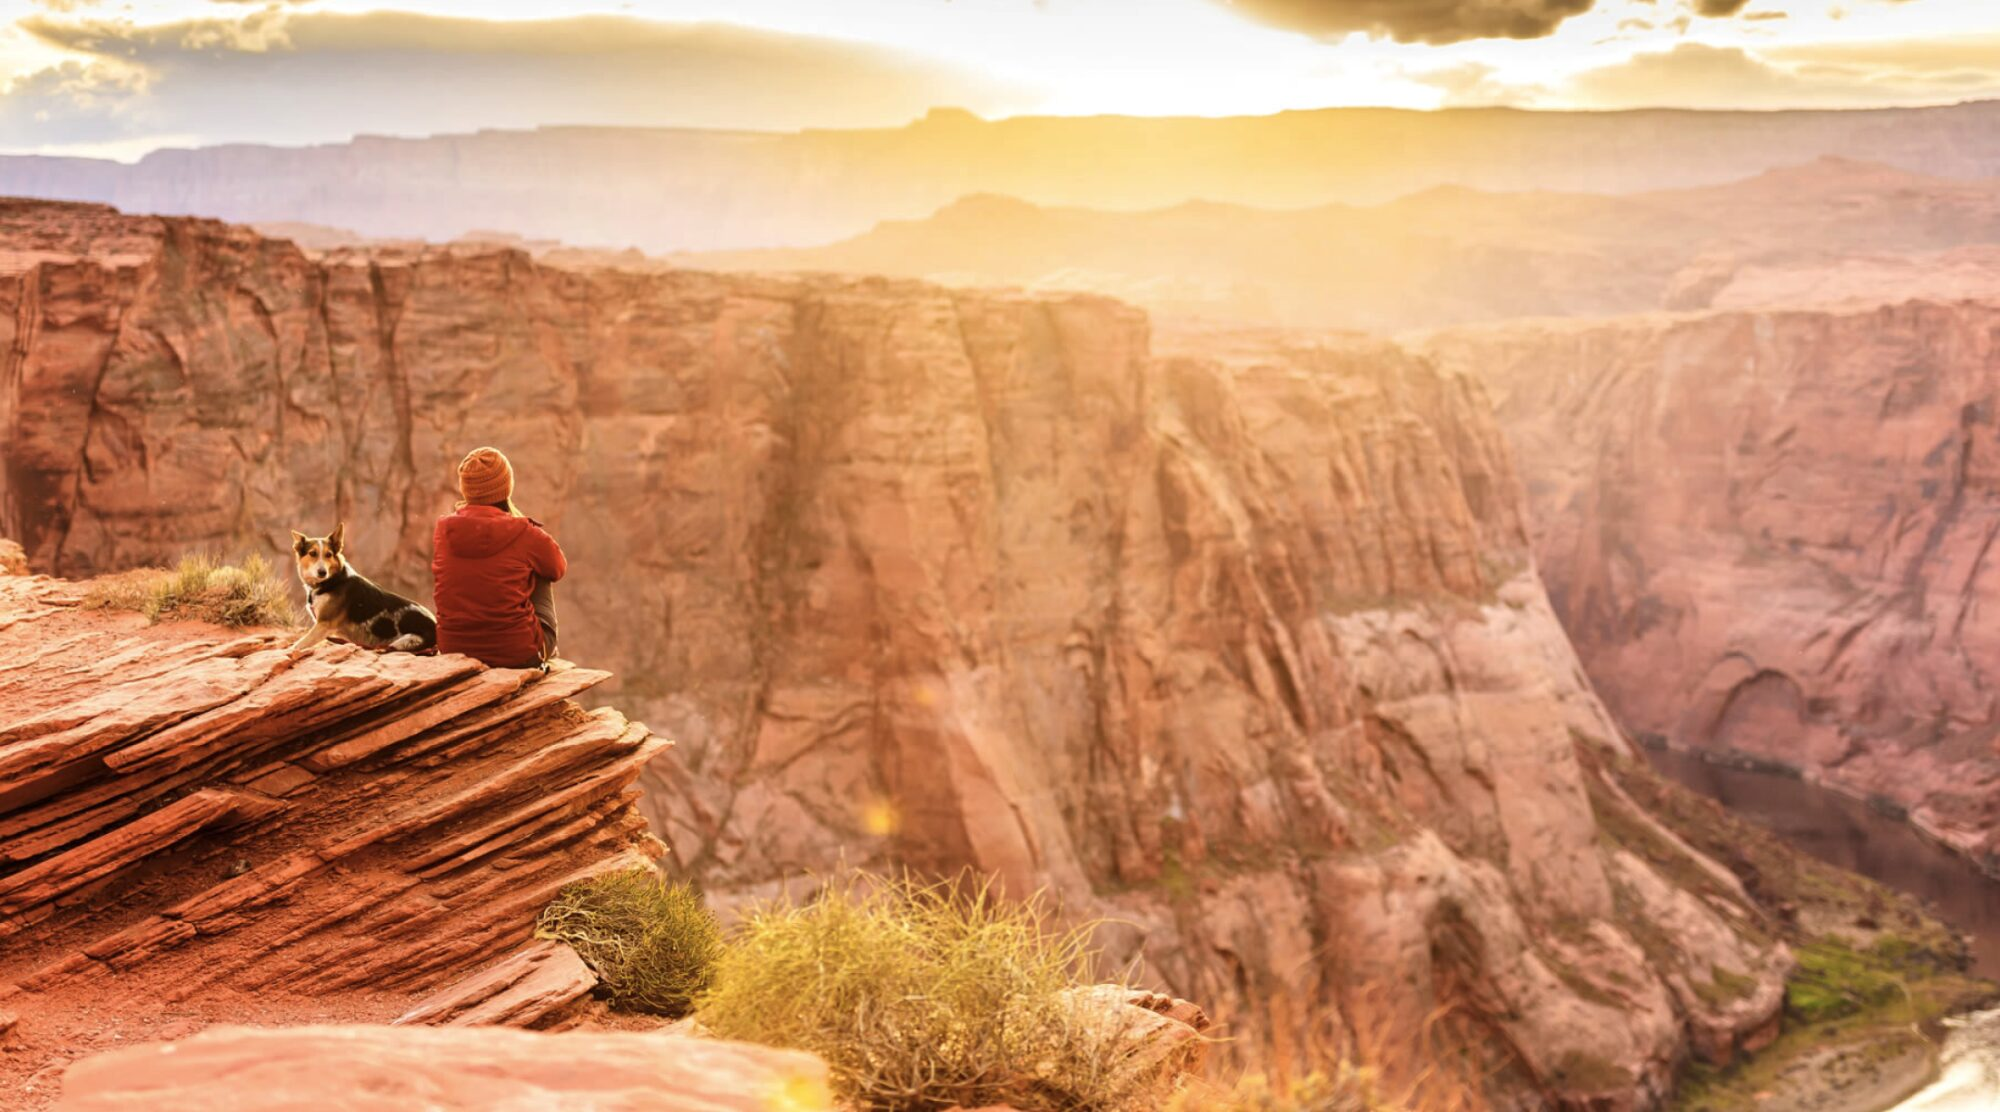 A woman and her dog look out over a canyon with a green valley floor and steep red cliffs either side